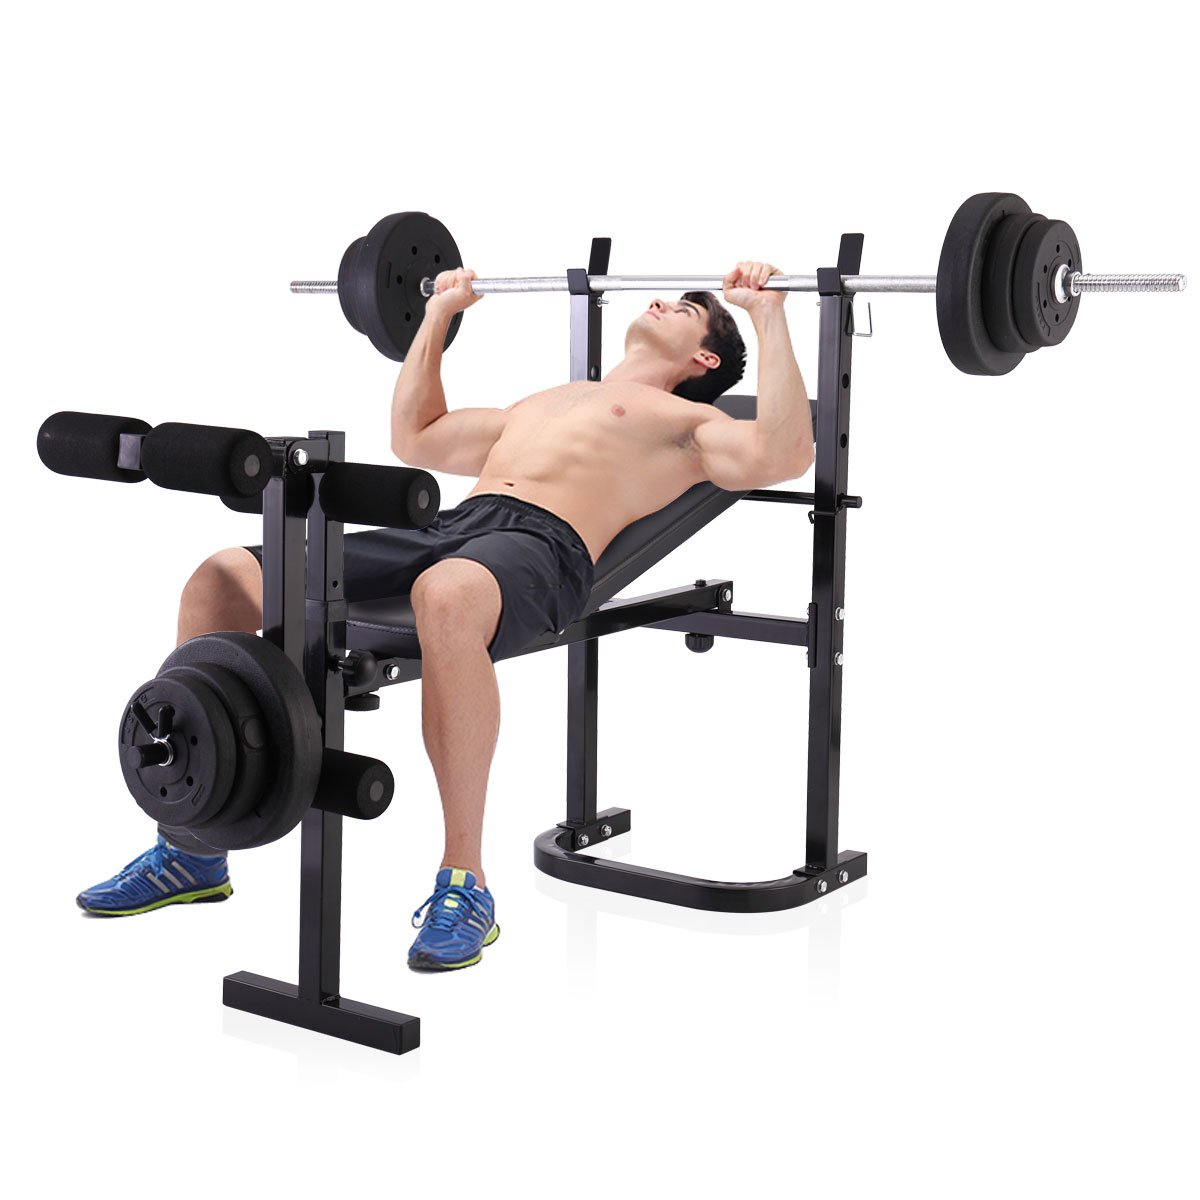 JAXPETY Adjustable Olympic Weight Bench with Leg lift Developer for Strength Training by JAXPETY